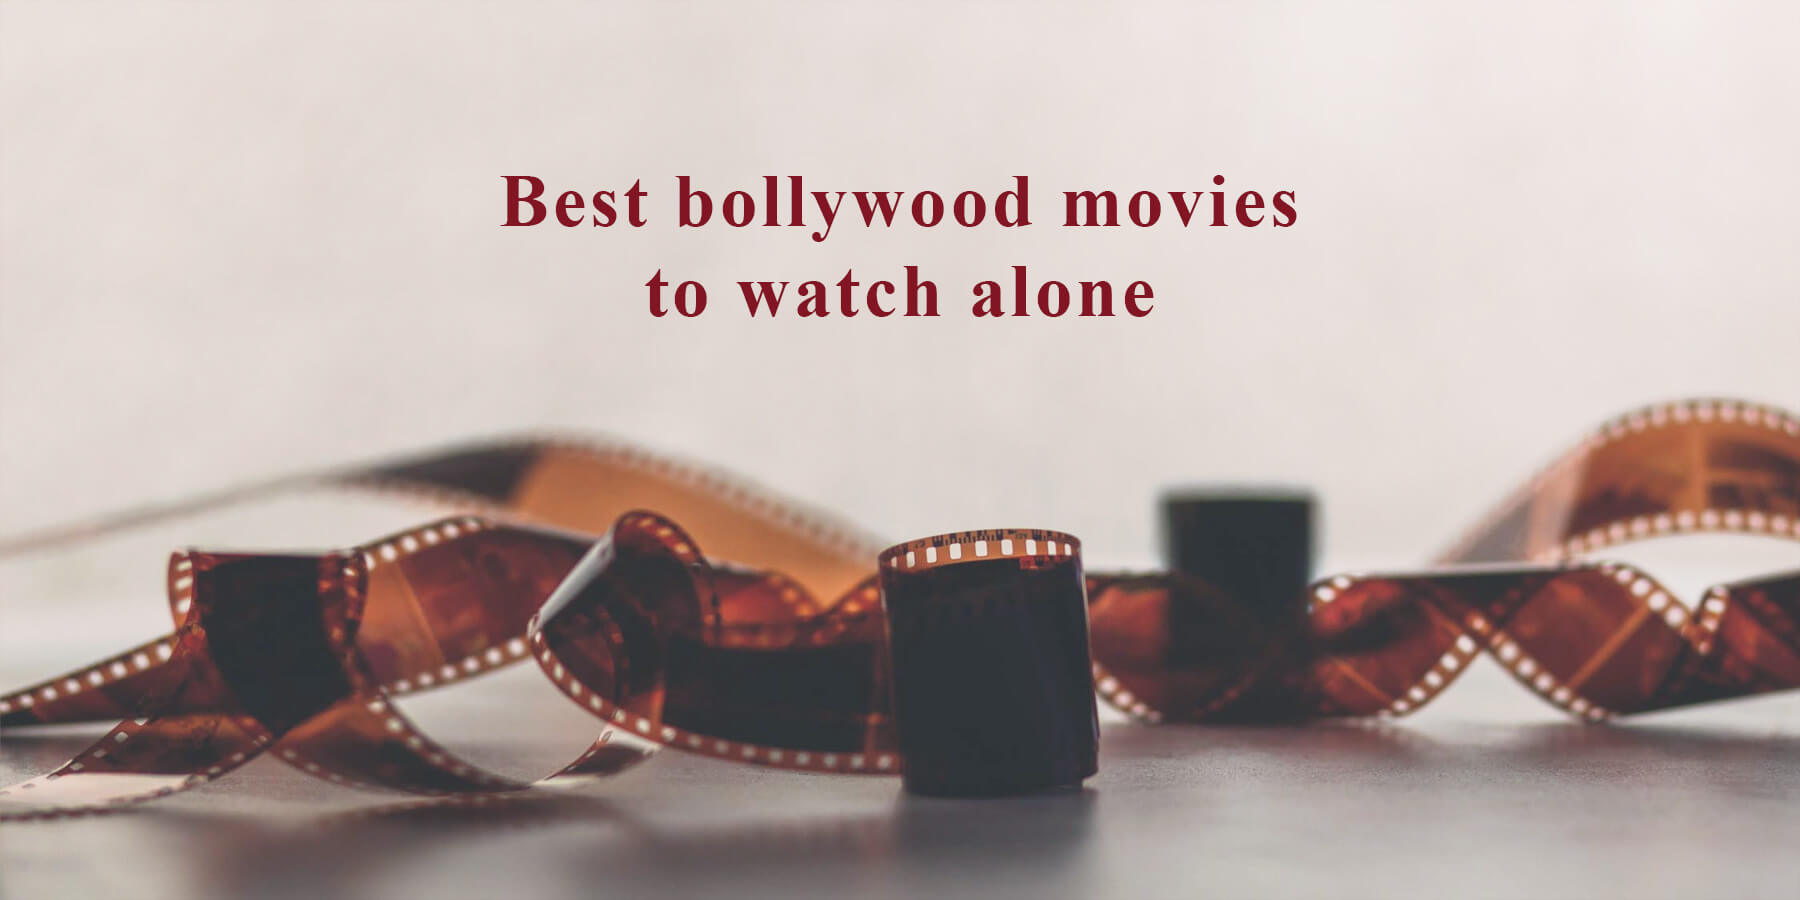 Best bollywood movies to watch alone